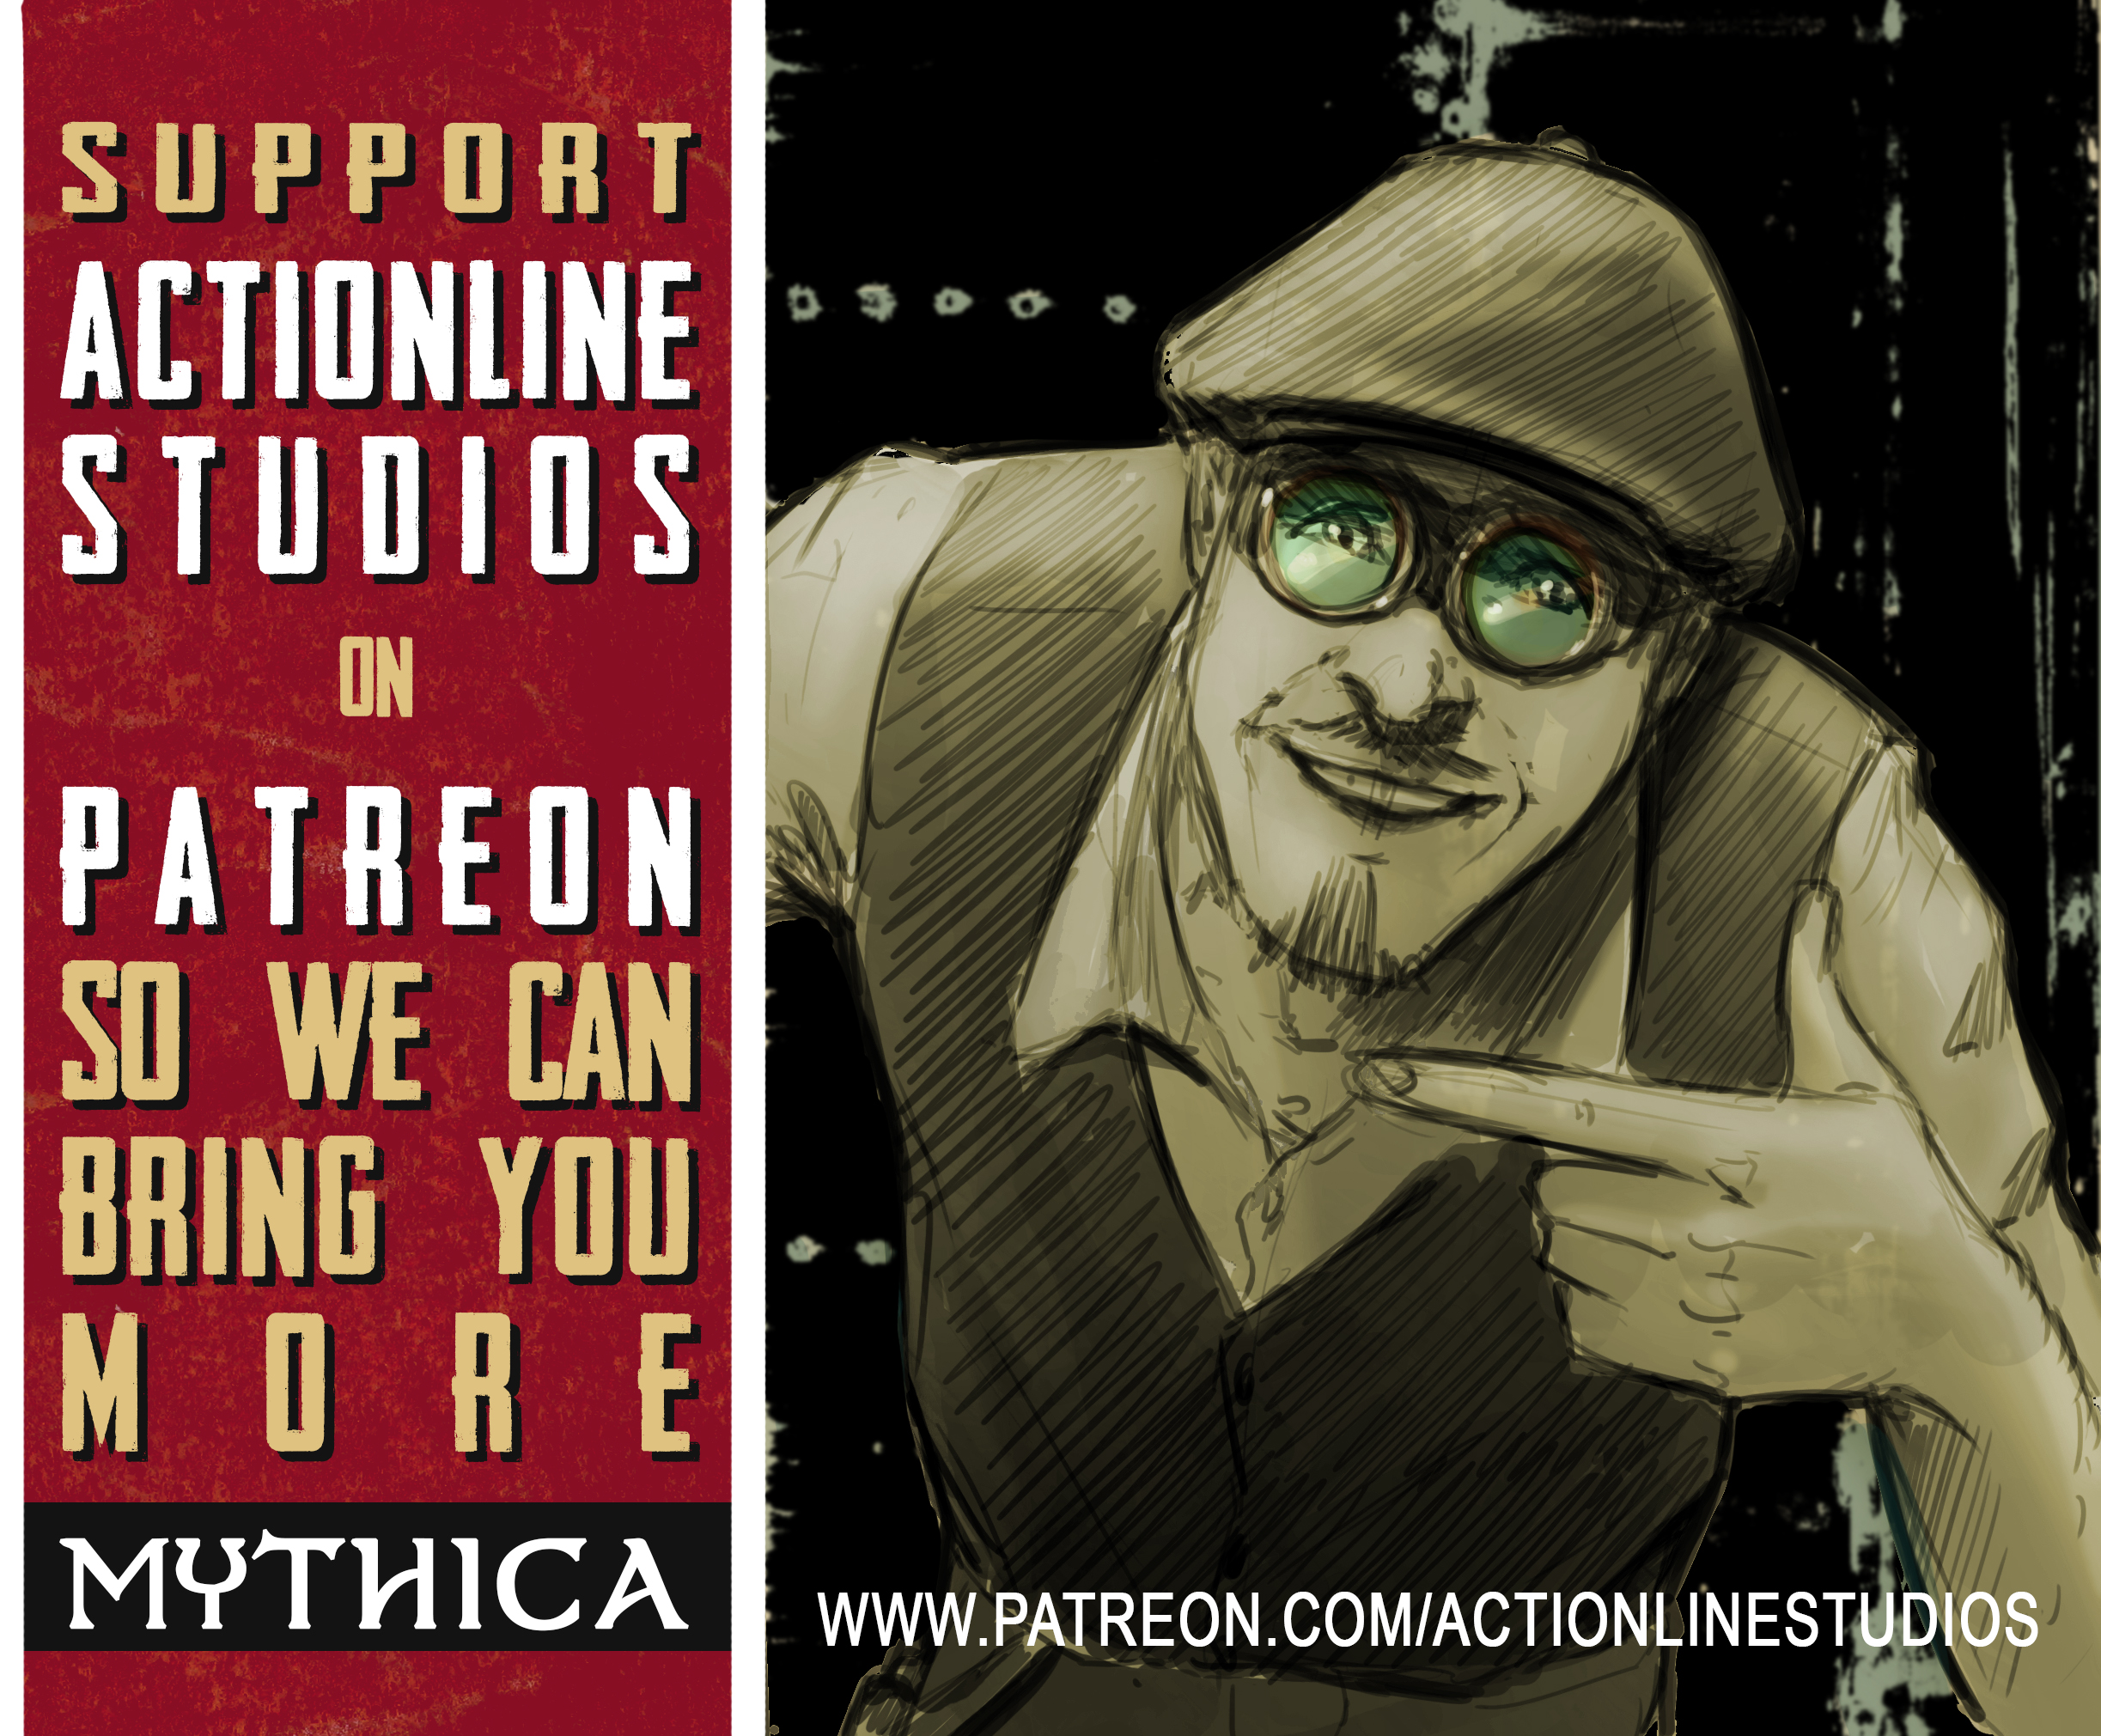 Support Actionline Studios on Patreon so we can make more Mythica comics!